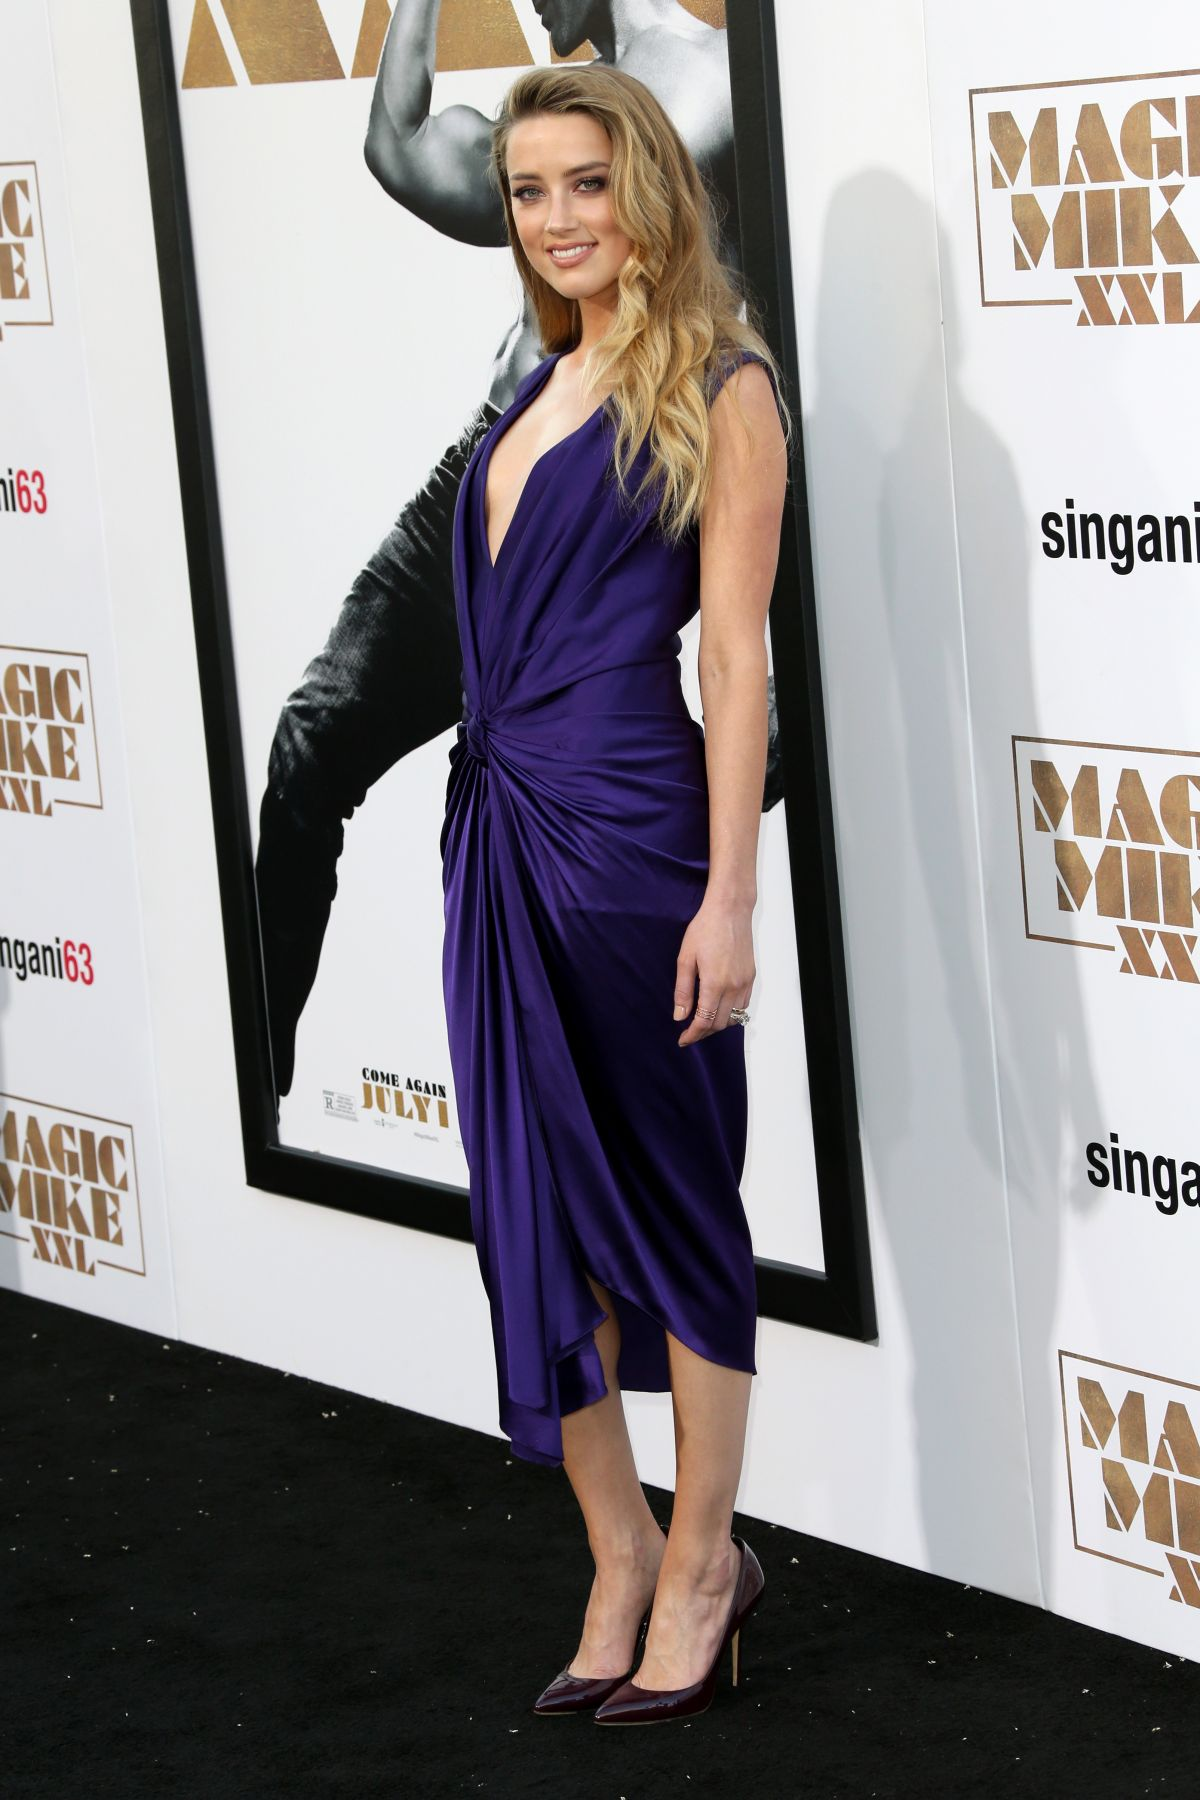 amber-heard-at-magic-mike-xxl-premiere-in-los-angeles_4.jpg (1200×1800)